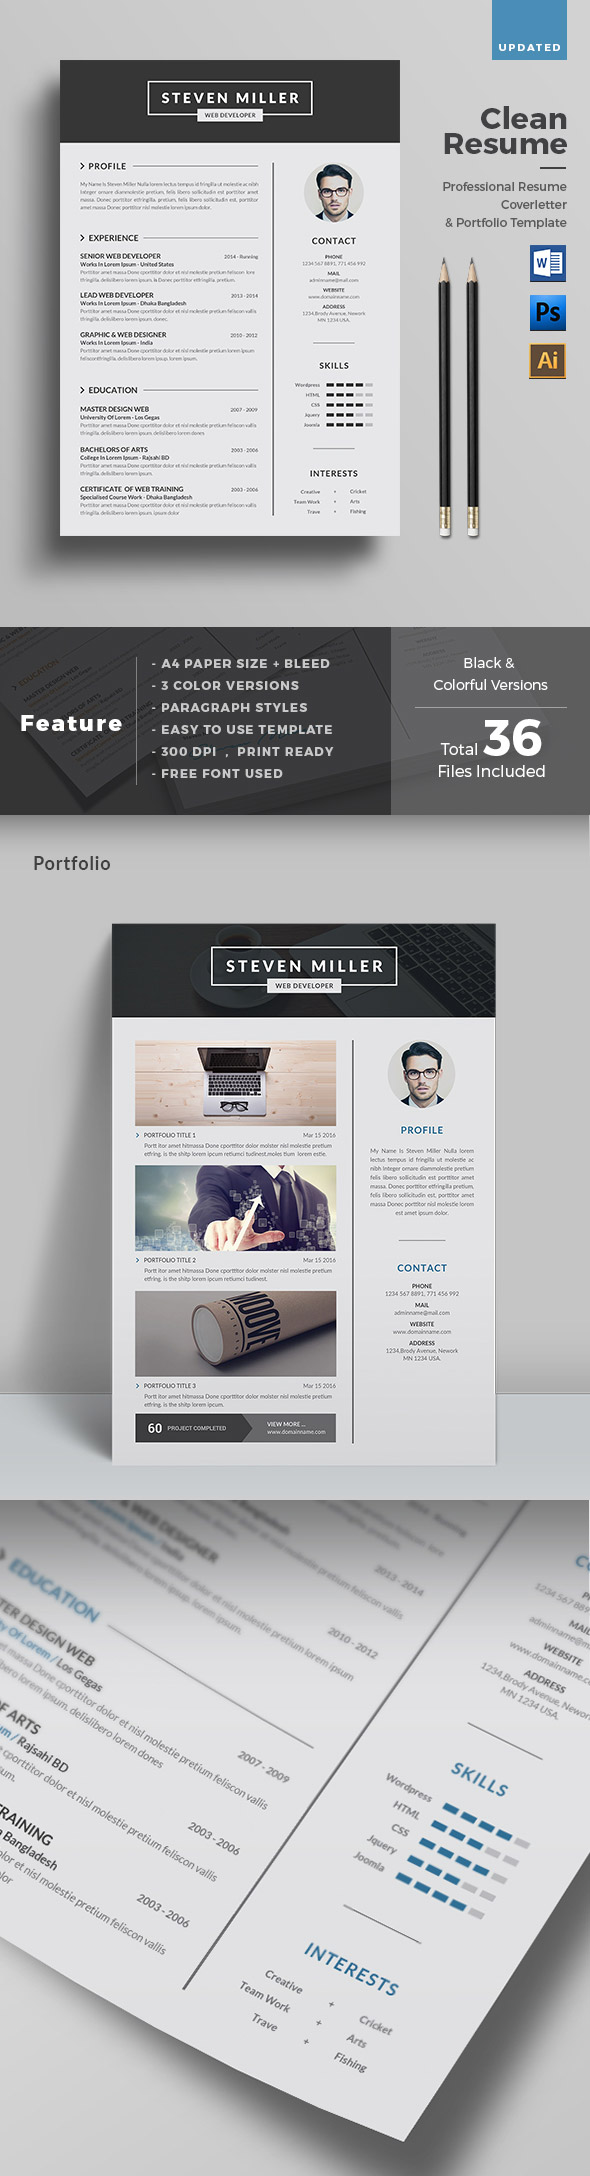 50 Best Minimal Resume Templates - 22